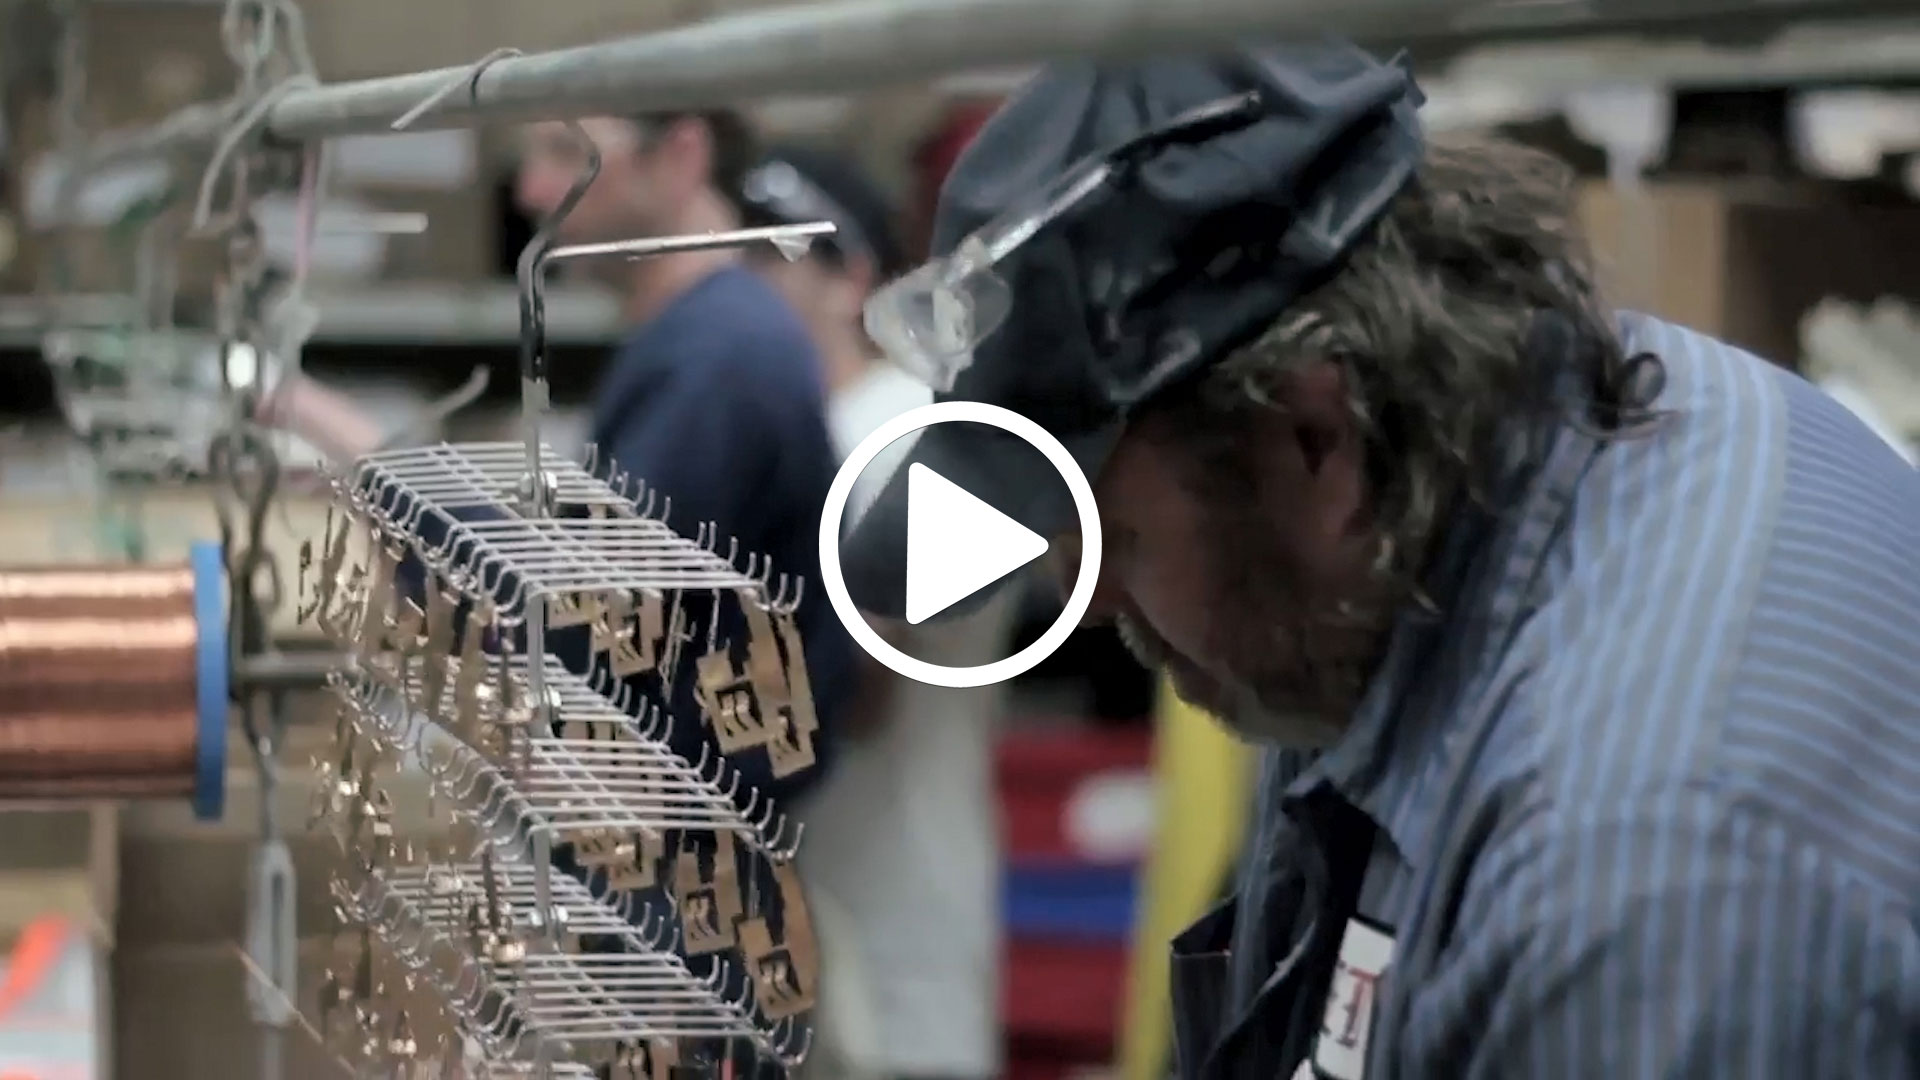 Watch our careers video for available job opening Production Workers & General Laborer in Marshall, MN